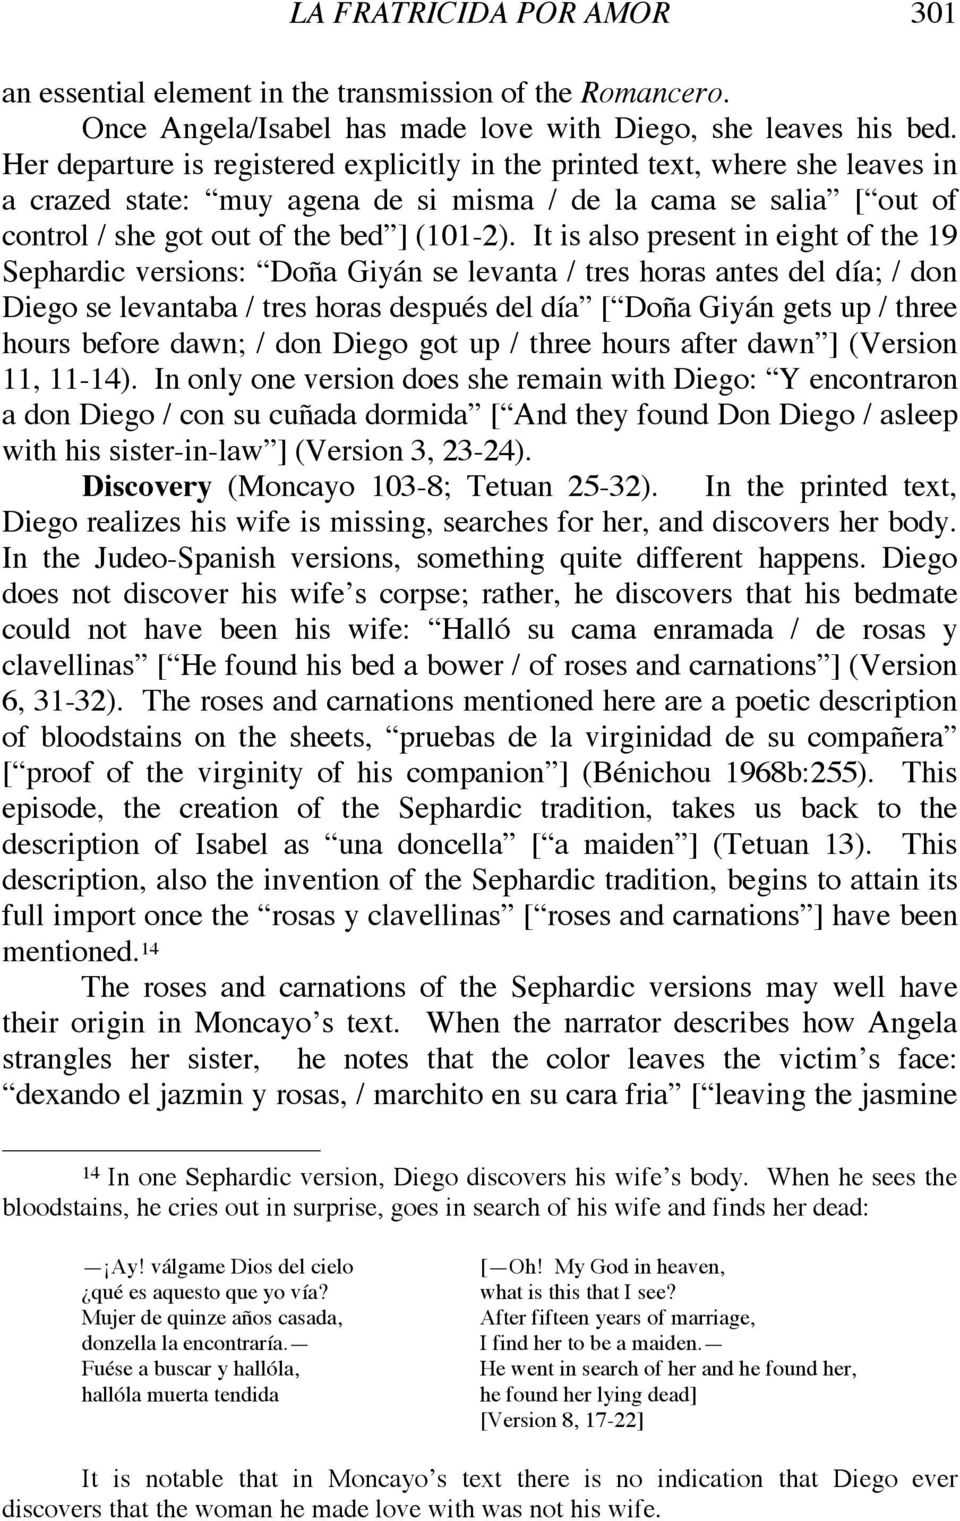 It is also present in eight of the 19 Sephardic versions: Doña Giyán se levanta / tres horas antes del día; / don Diego se levantaba / tres horas después del día [ Doña Giyán gets up / three hours